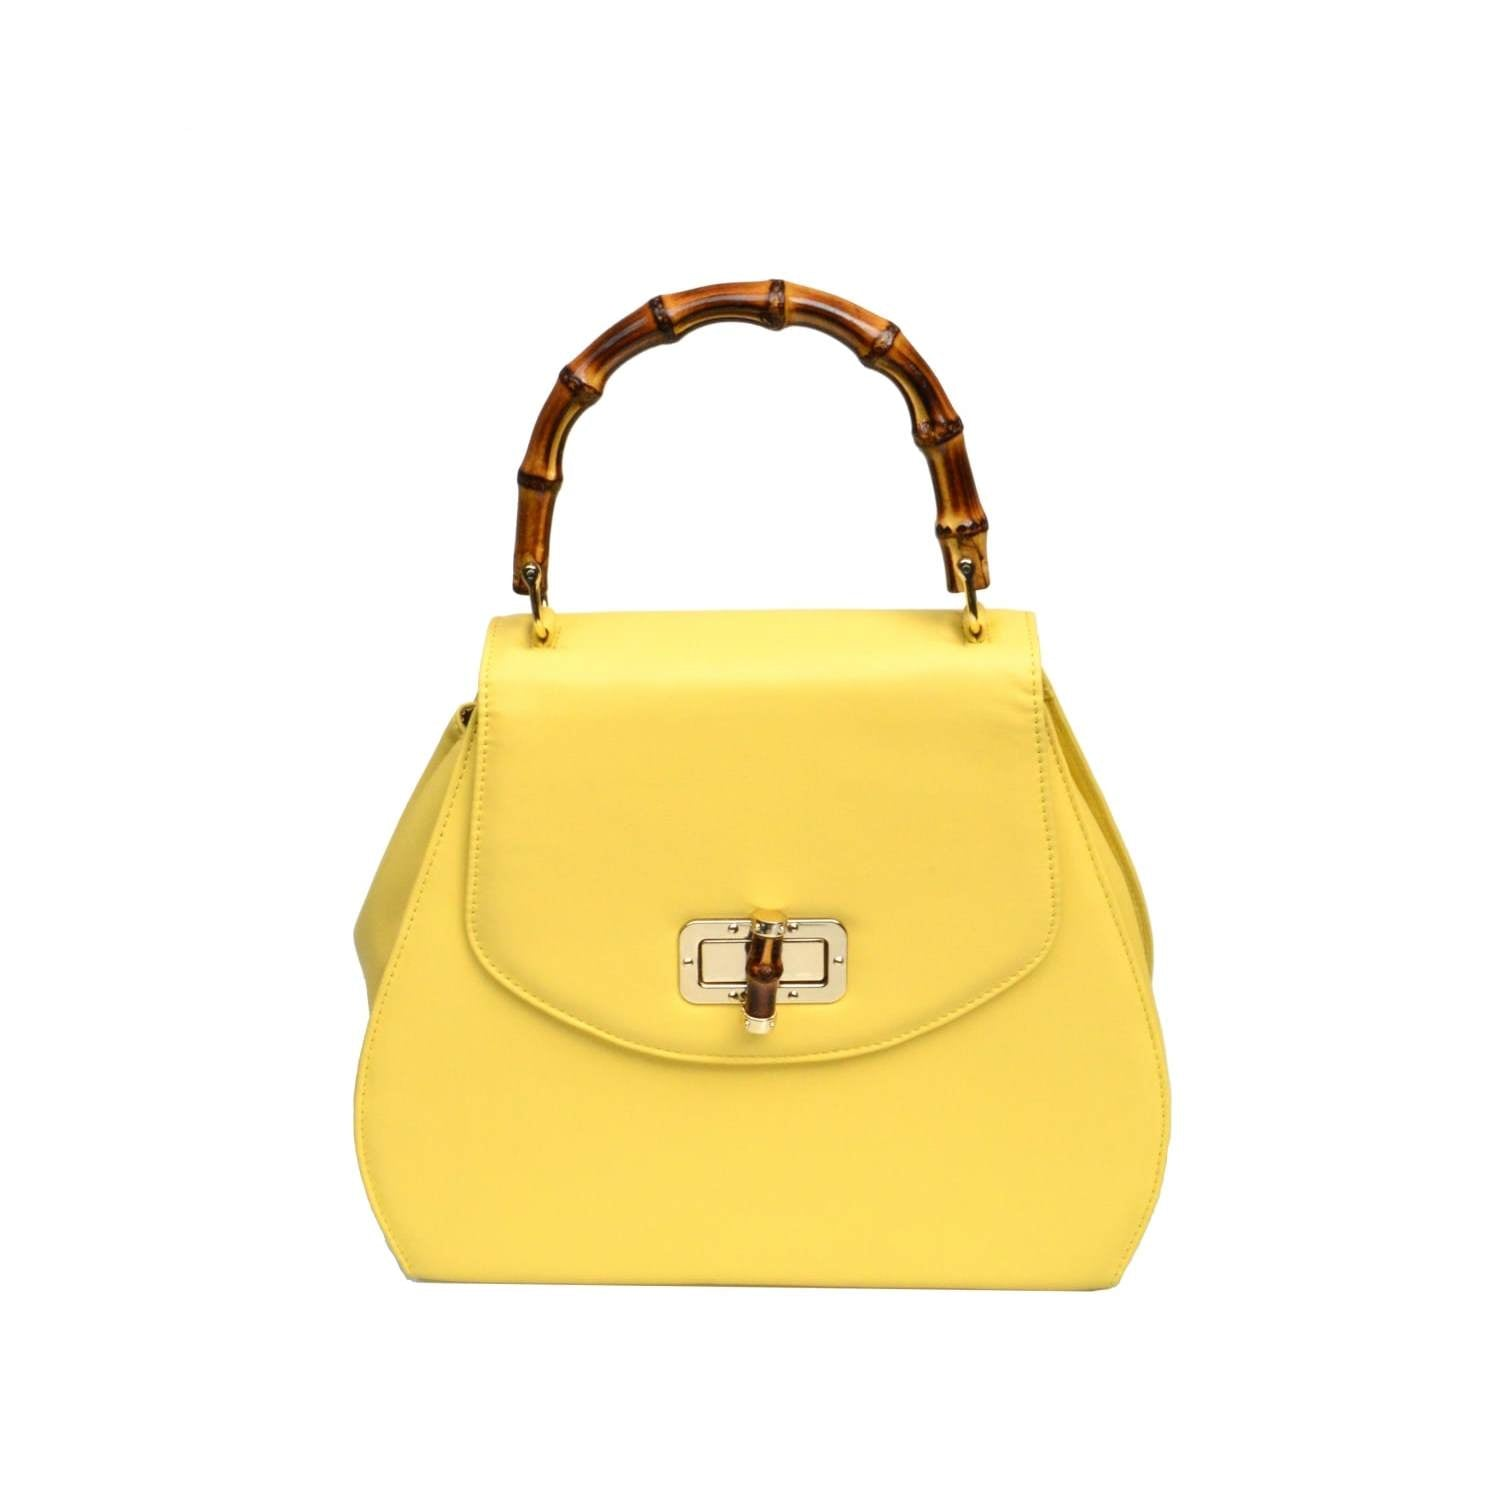 Bebe Bamboo Handle Handbag - Yellow